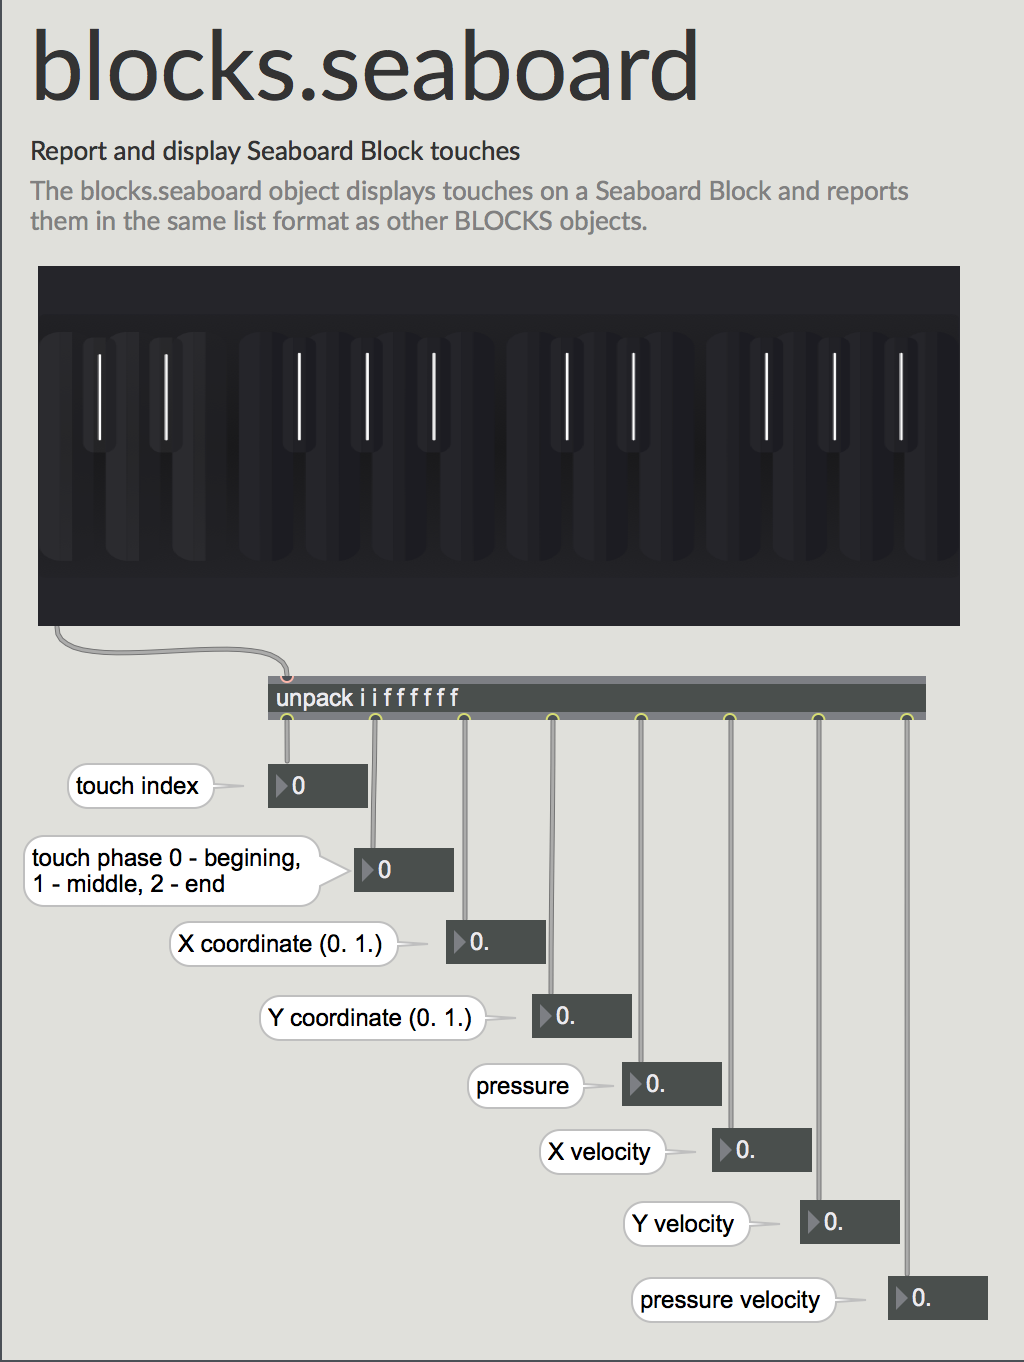 You can use blocks.seaboard to turn your Seaboard Block into a soft, expressive multitouch surface for Max